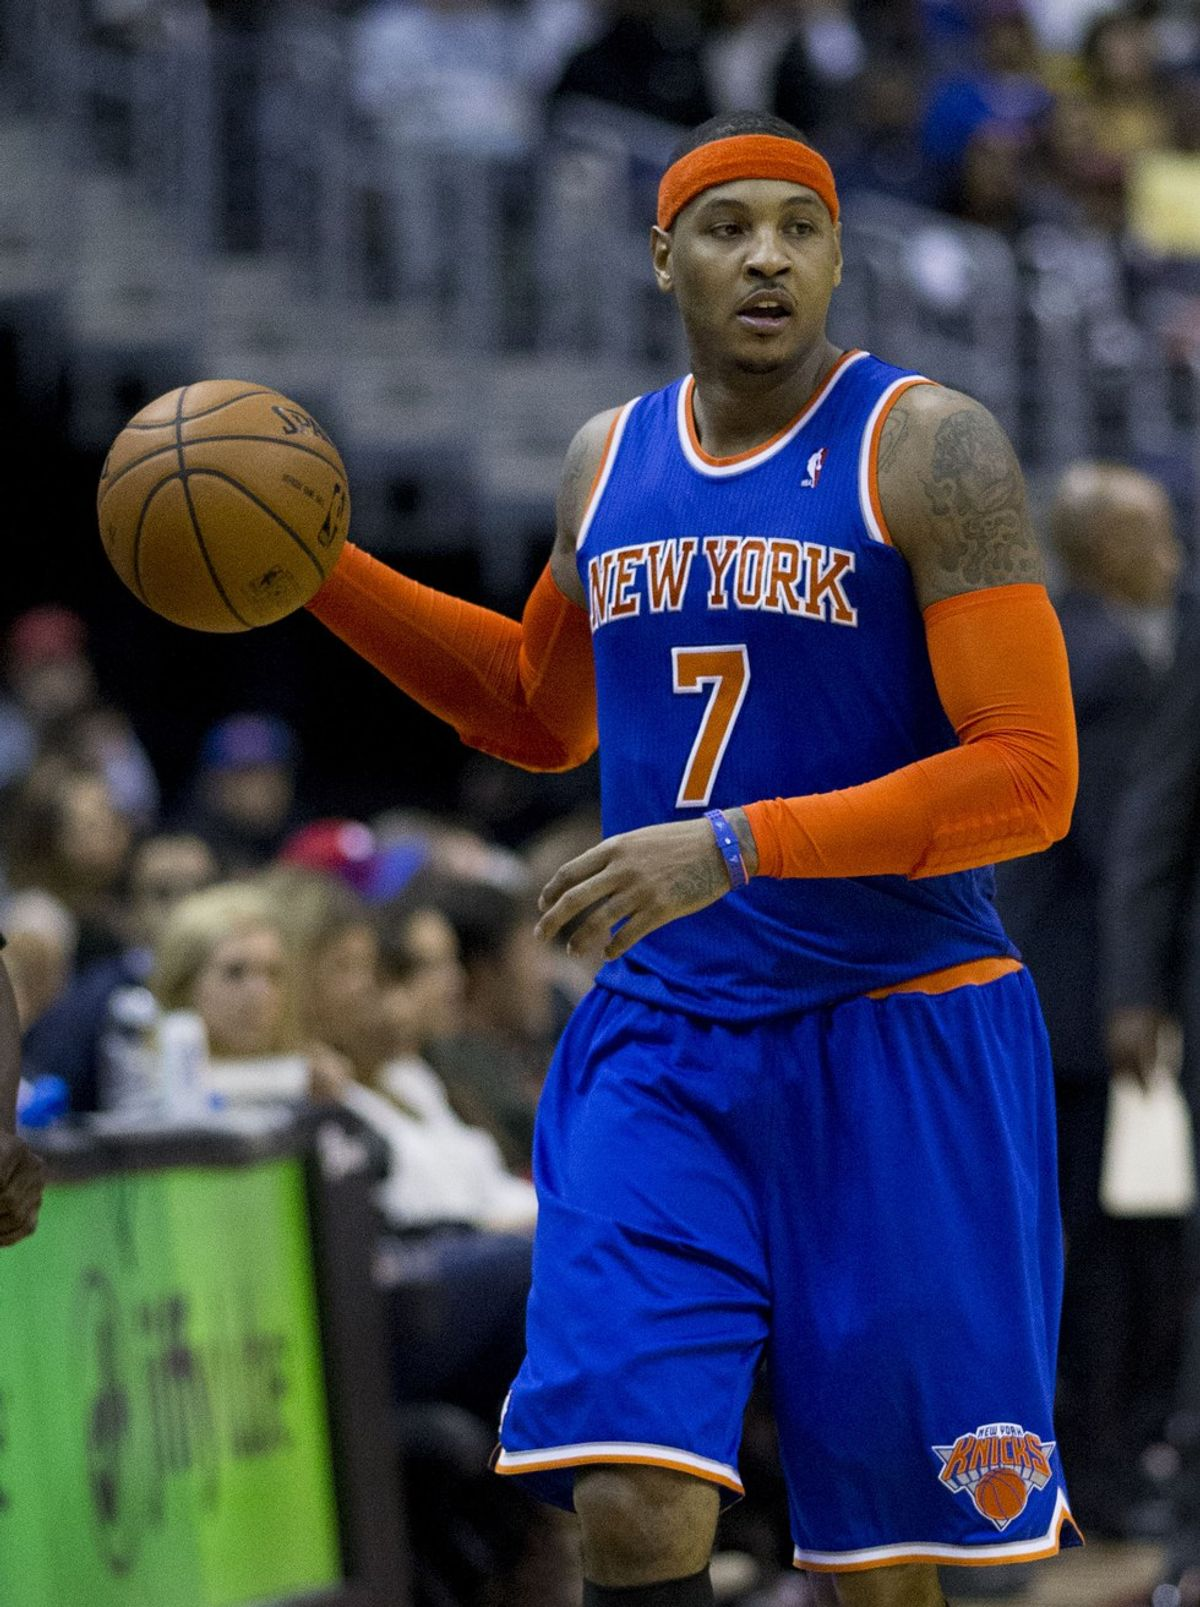 Carmelo Anthony's Future With The Knicks In Doubt